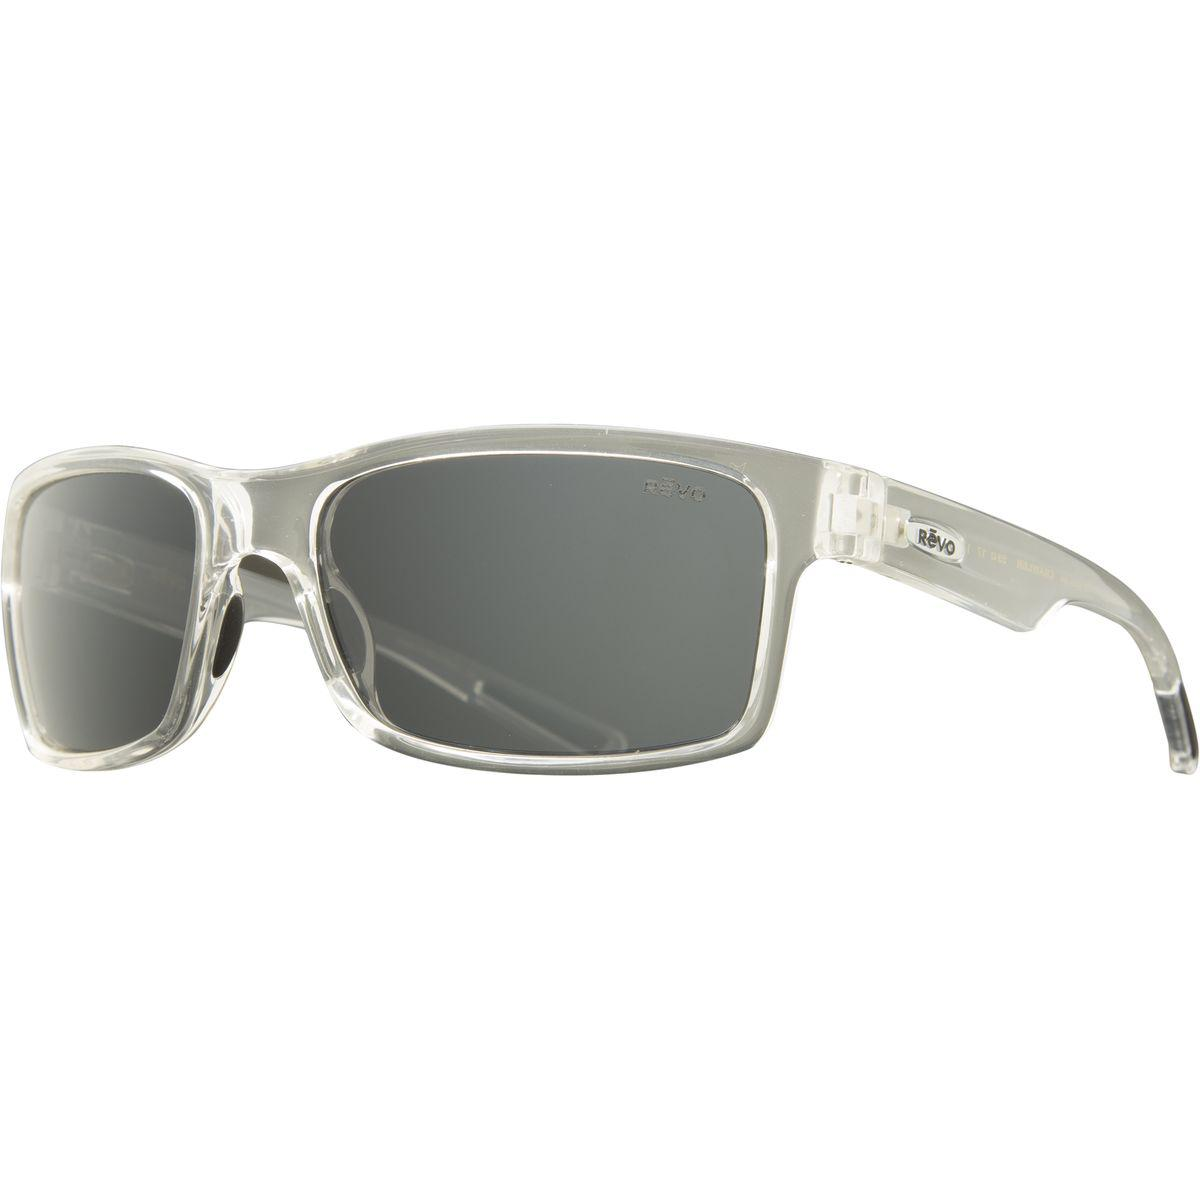 f3667111a0 Lyst - Revo Crawler Sunglasses - Polarized in Gray for Men